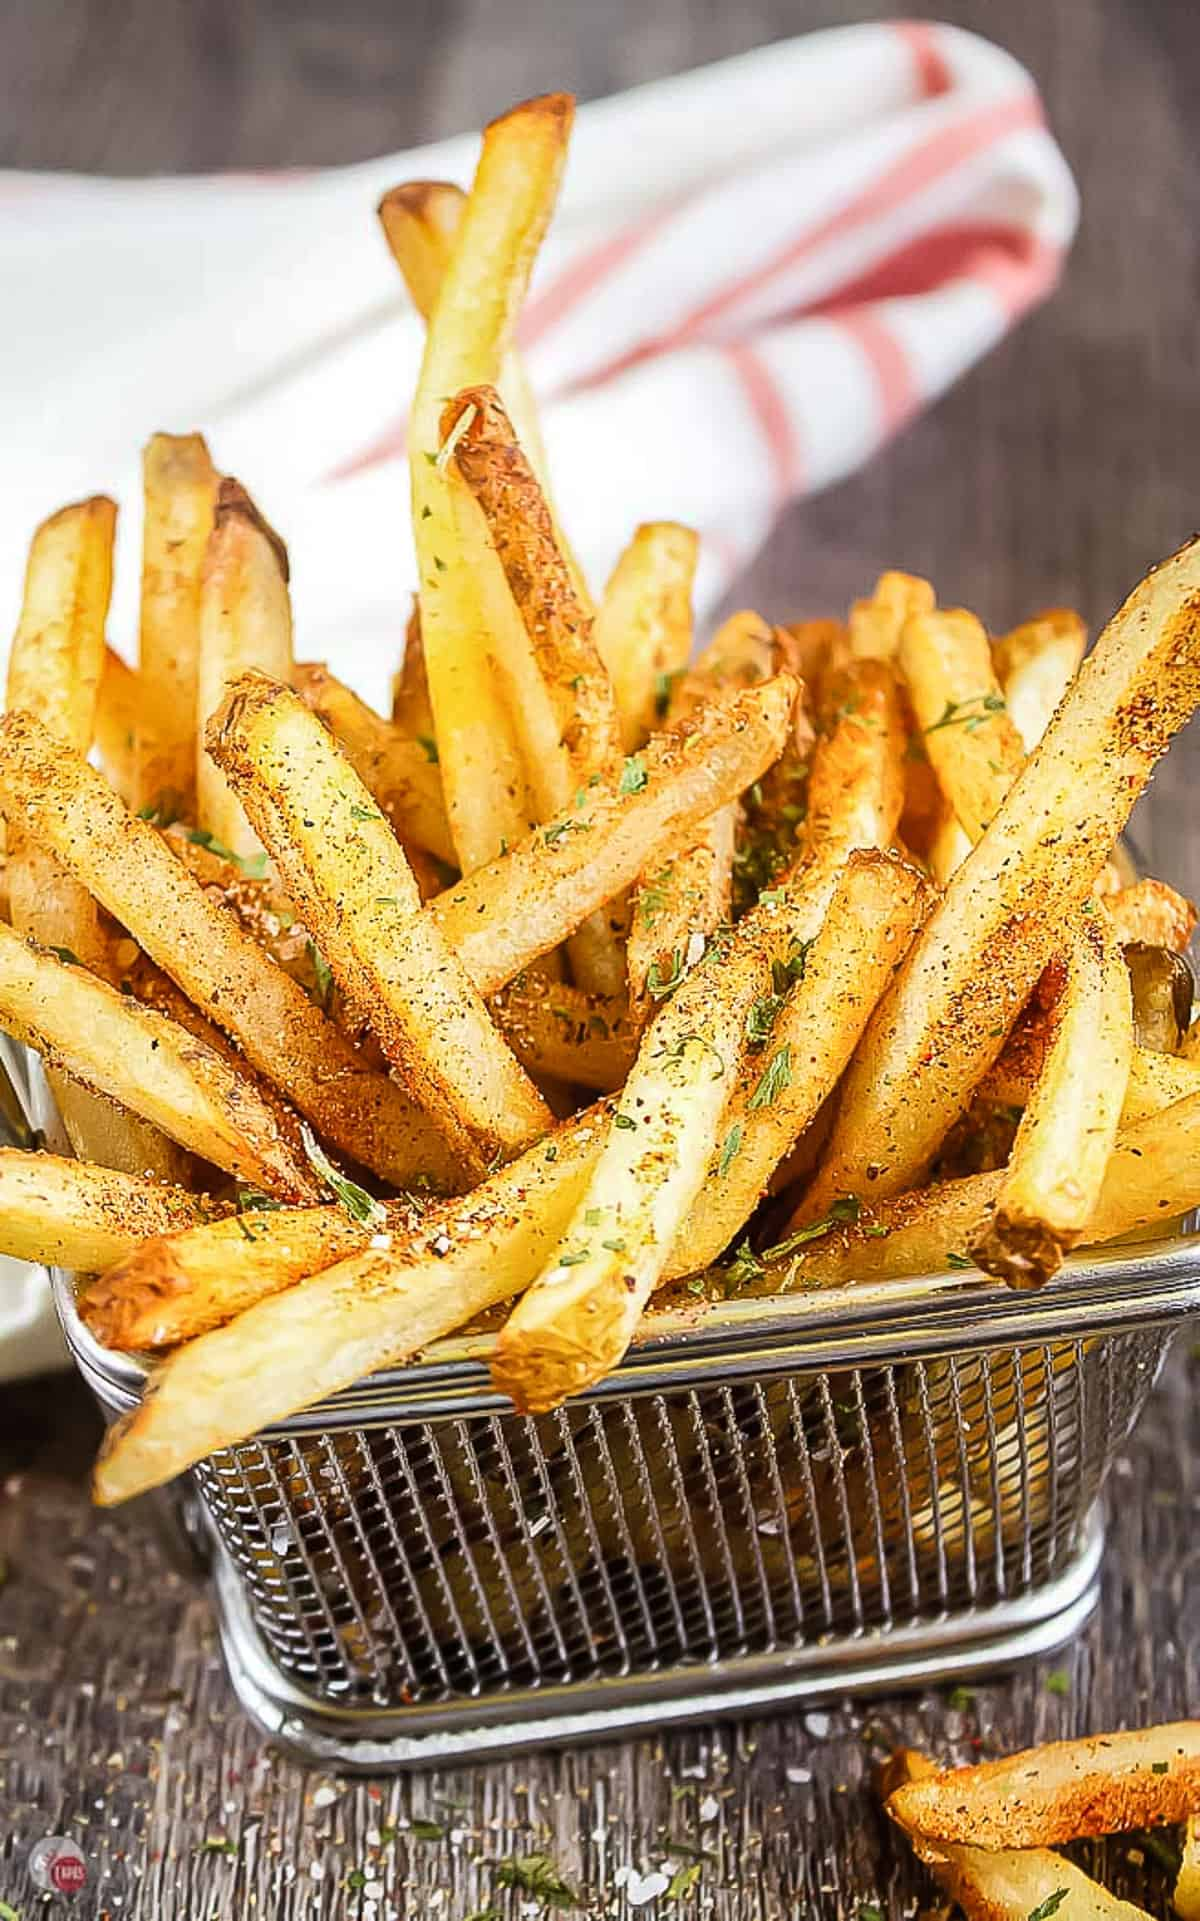 wire basket of fries with seasoning on them and a white napkin in the back